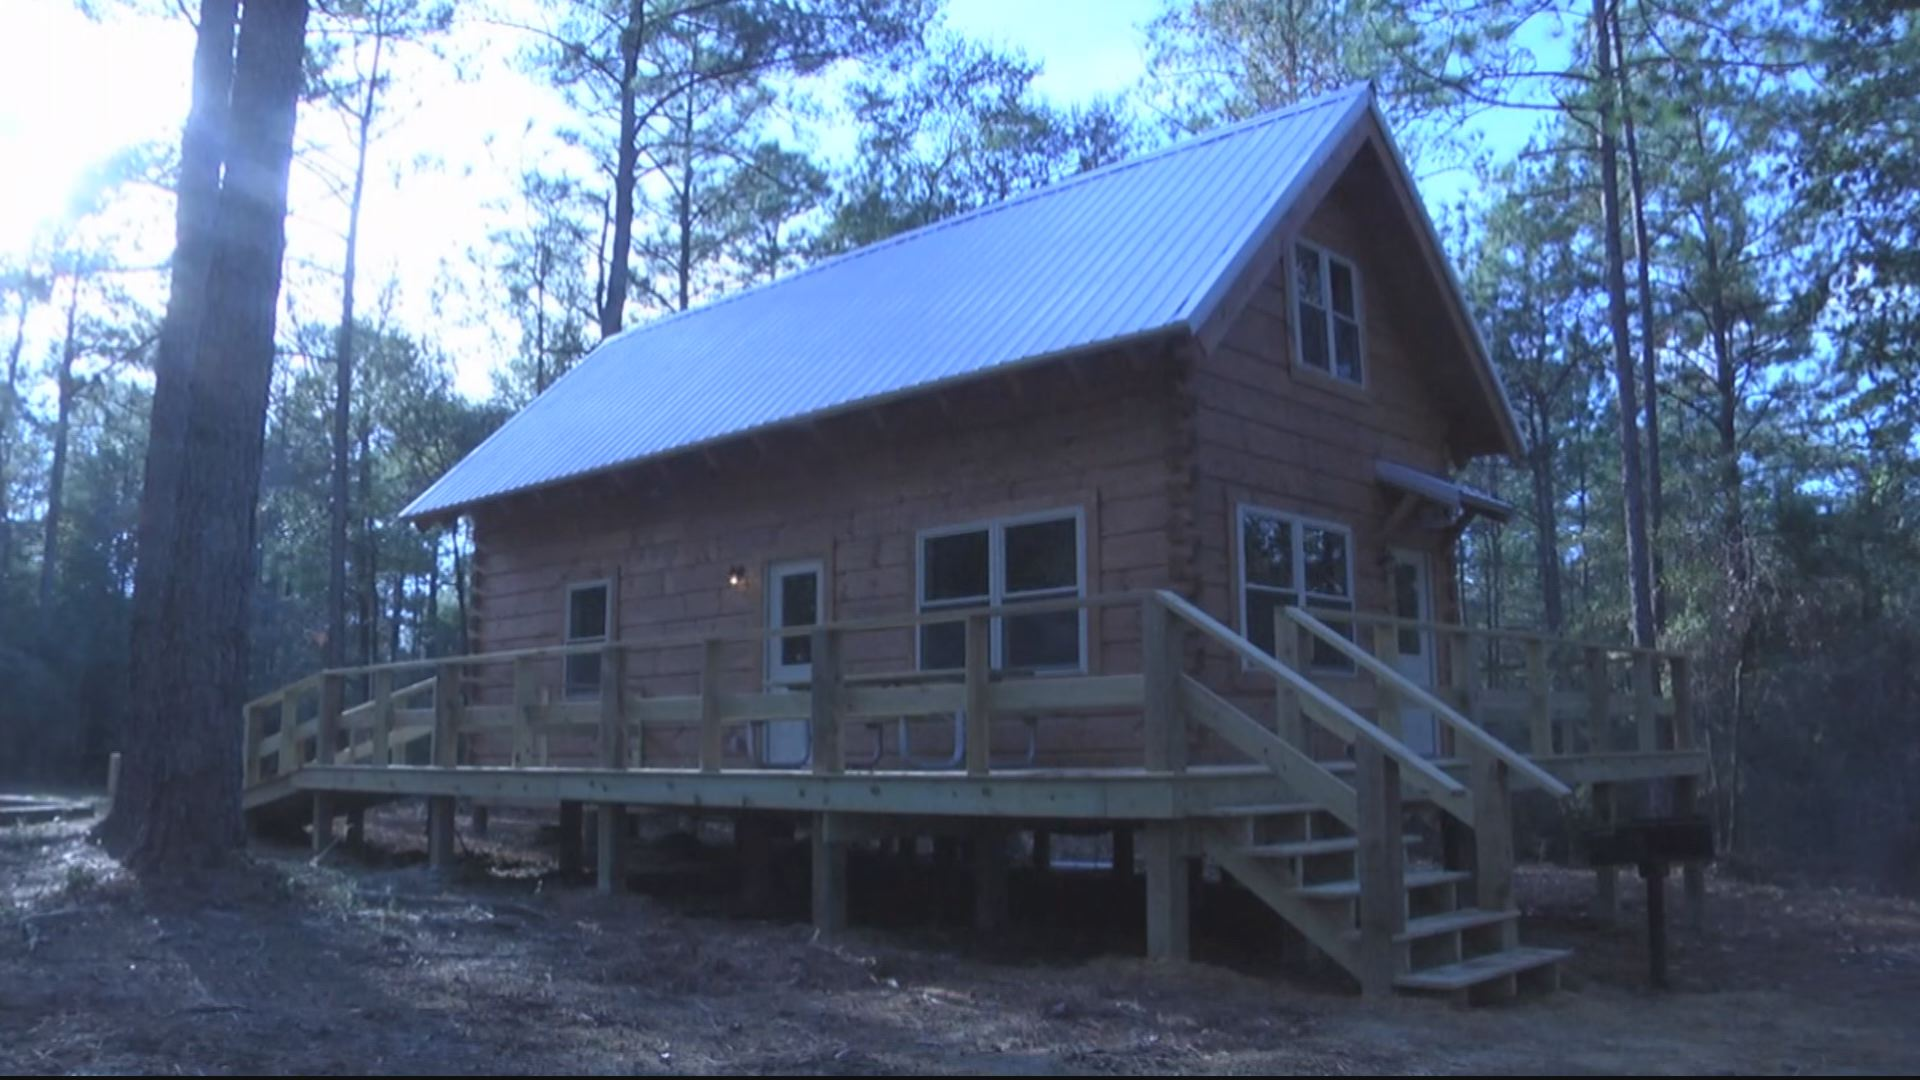 blakeley state park cabins_461489